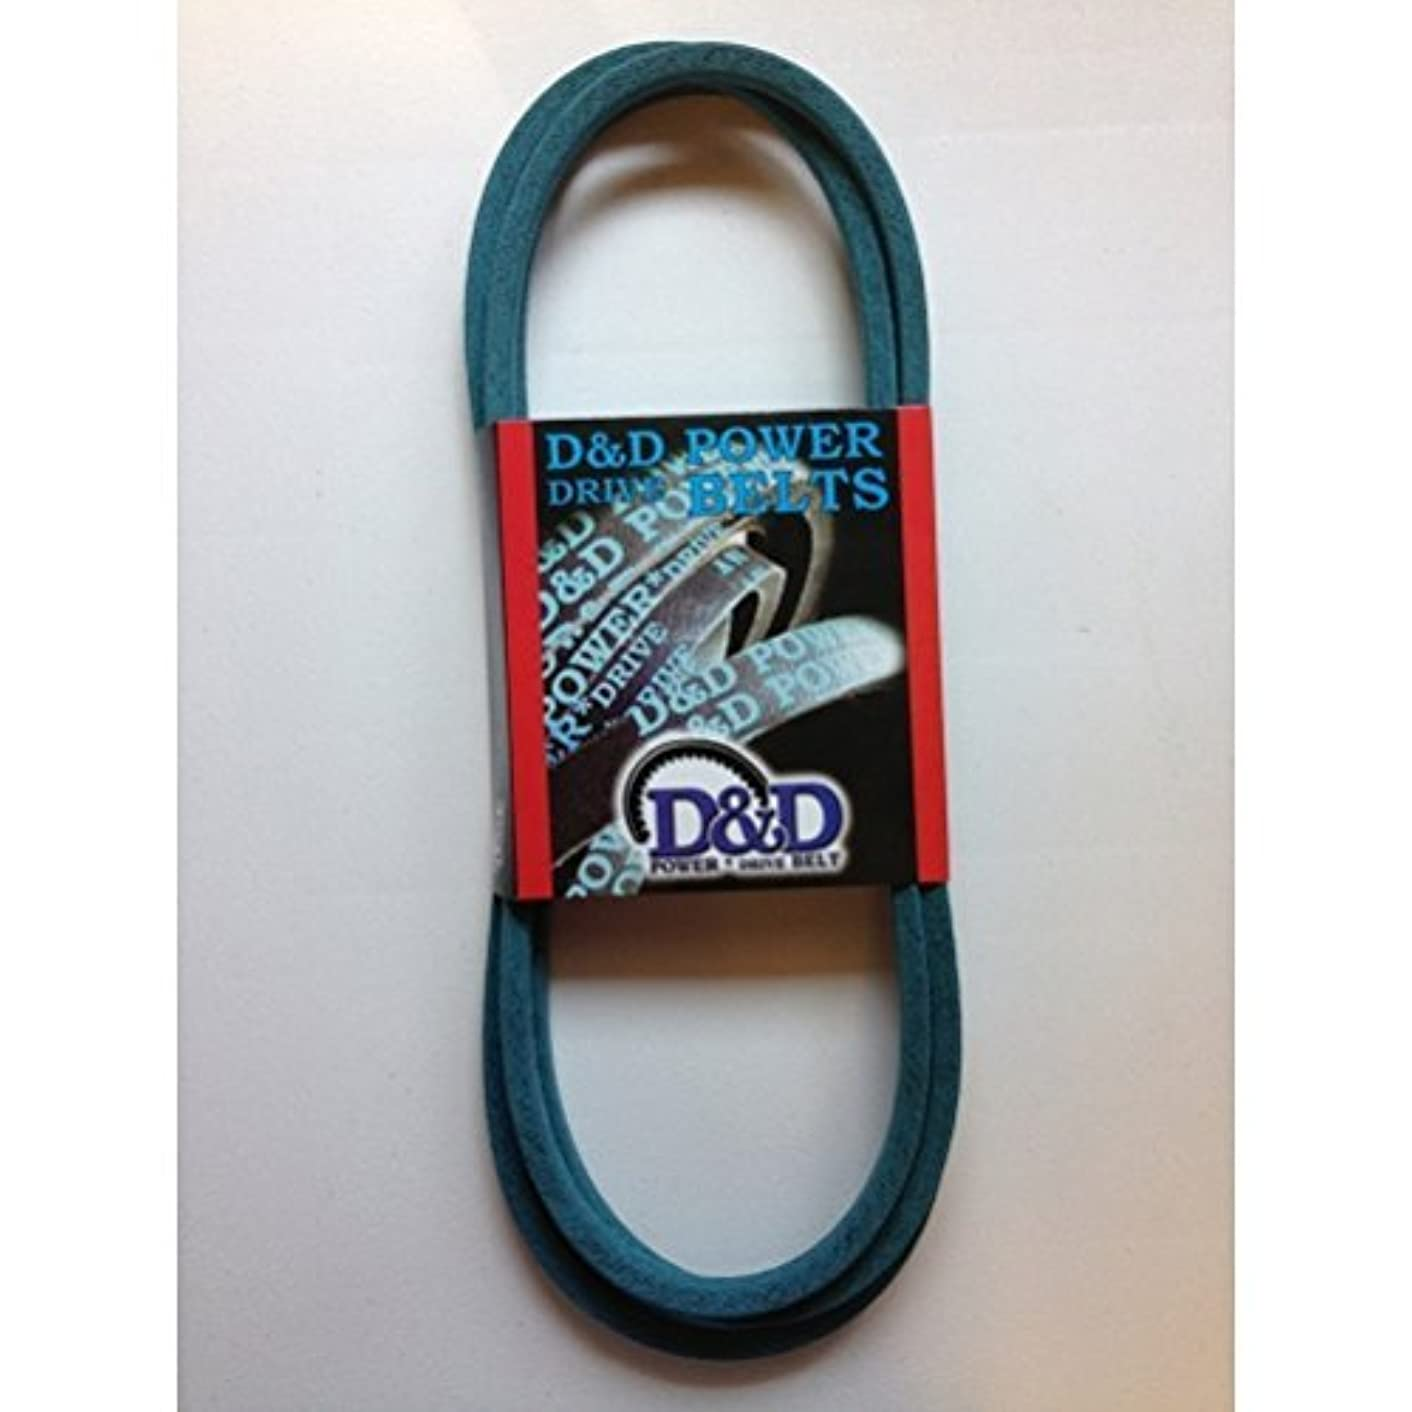 D&D PowerDrive 7074J AYP American Yard Products Kevlar Replacement Belt, 1 Band, Aramid